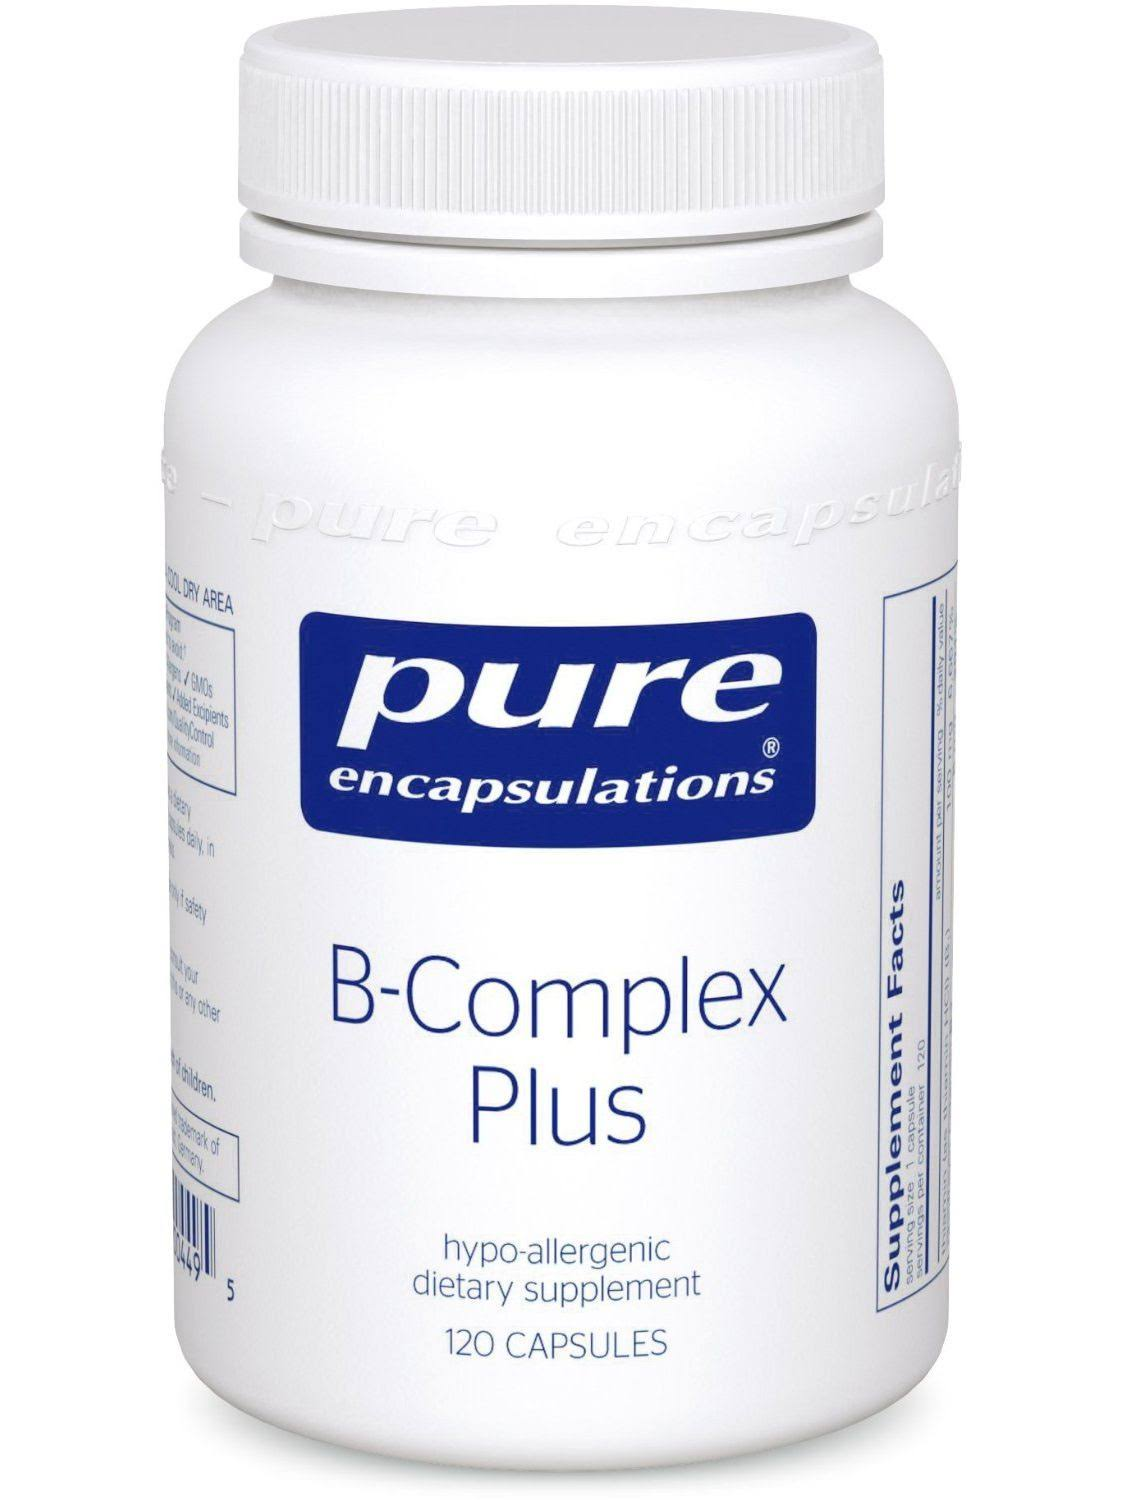 Pure Encapsulations B-complex Plus Supplement - 120 Vegetable Capsules